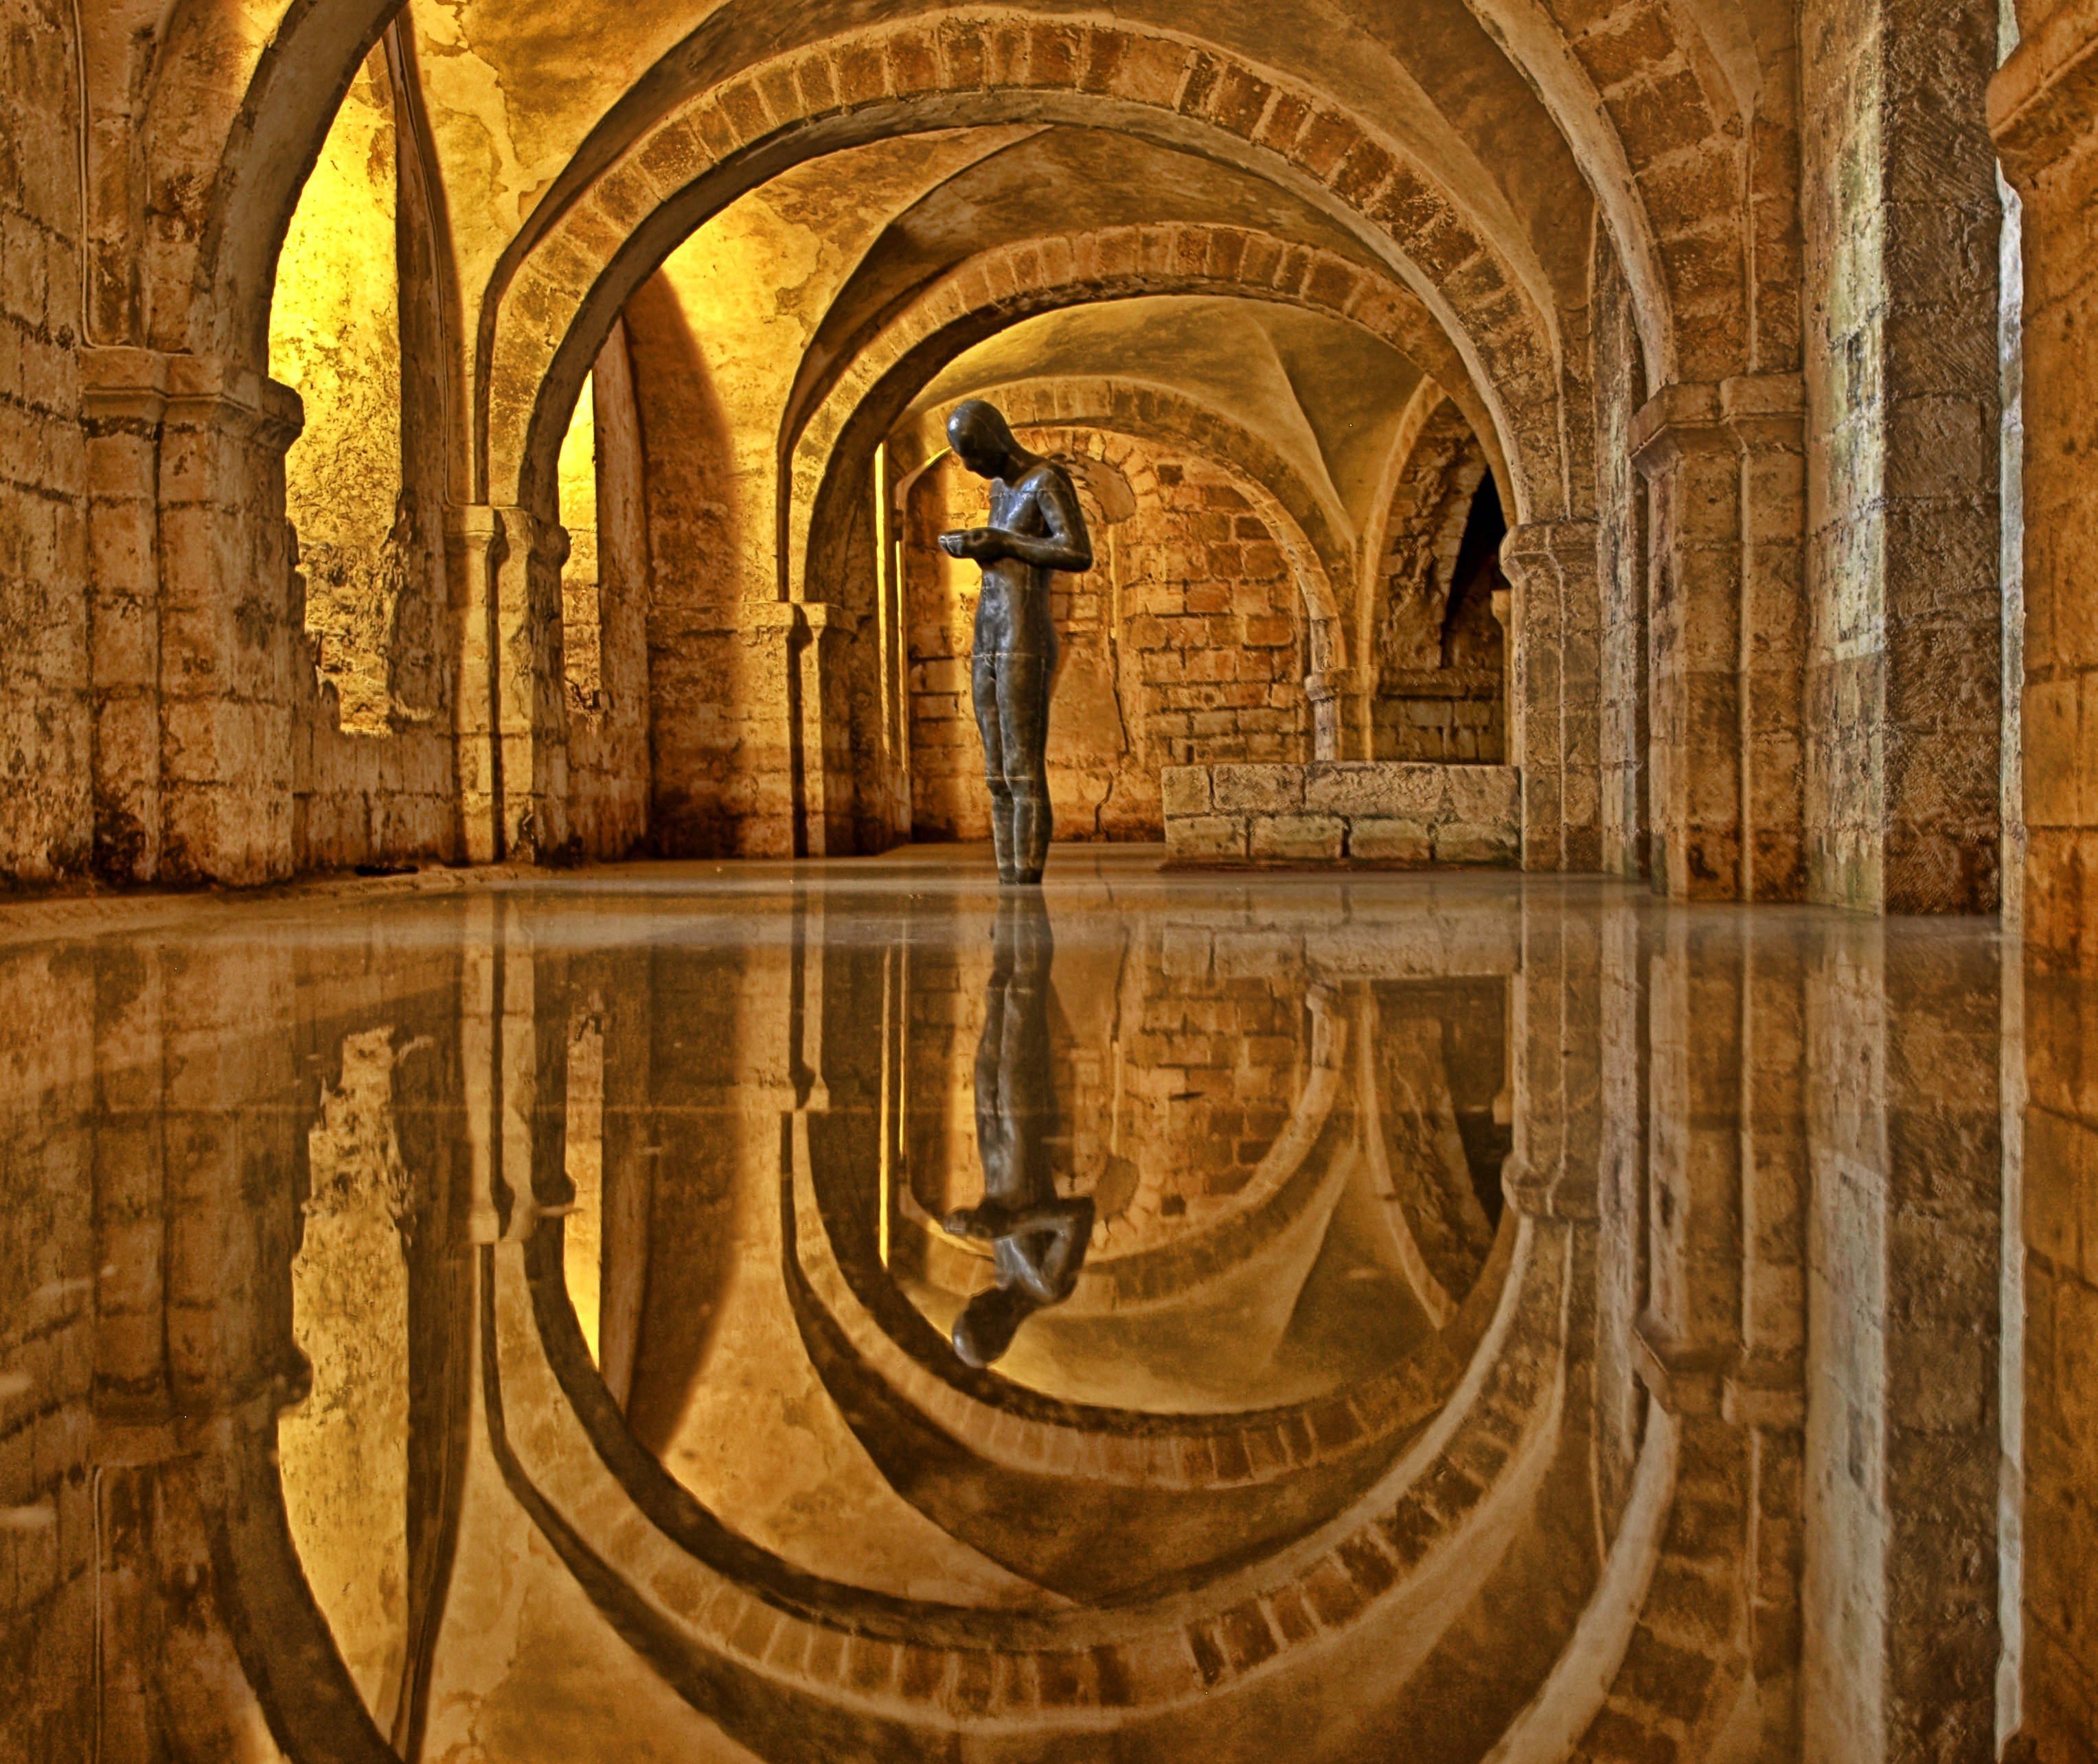 Antony Gormley, Sound II, 1986. Sculpture, metal statue standing in flooded crypt, Winchester Cathedral, England, UK.